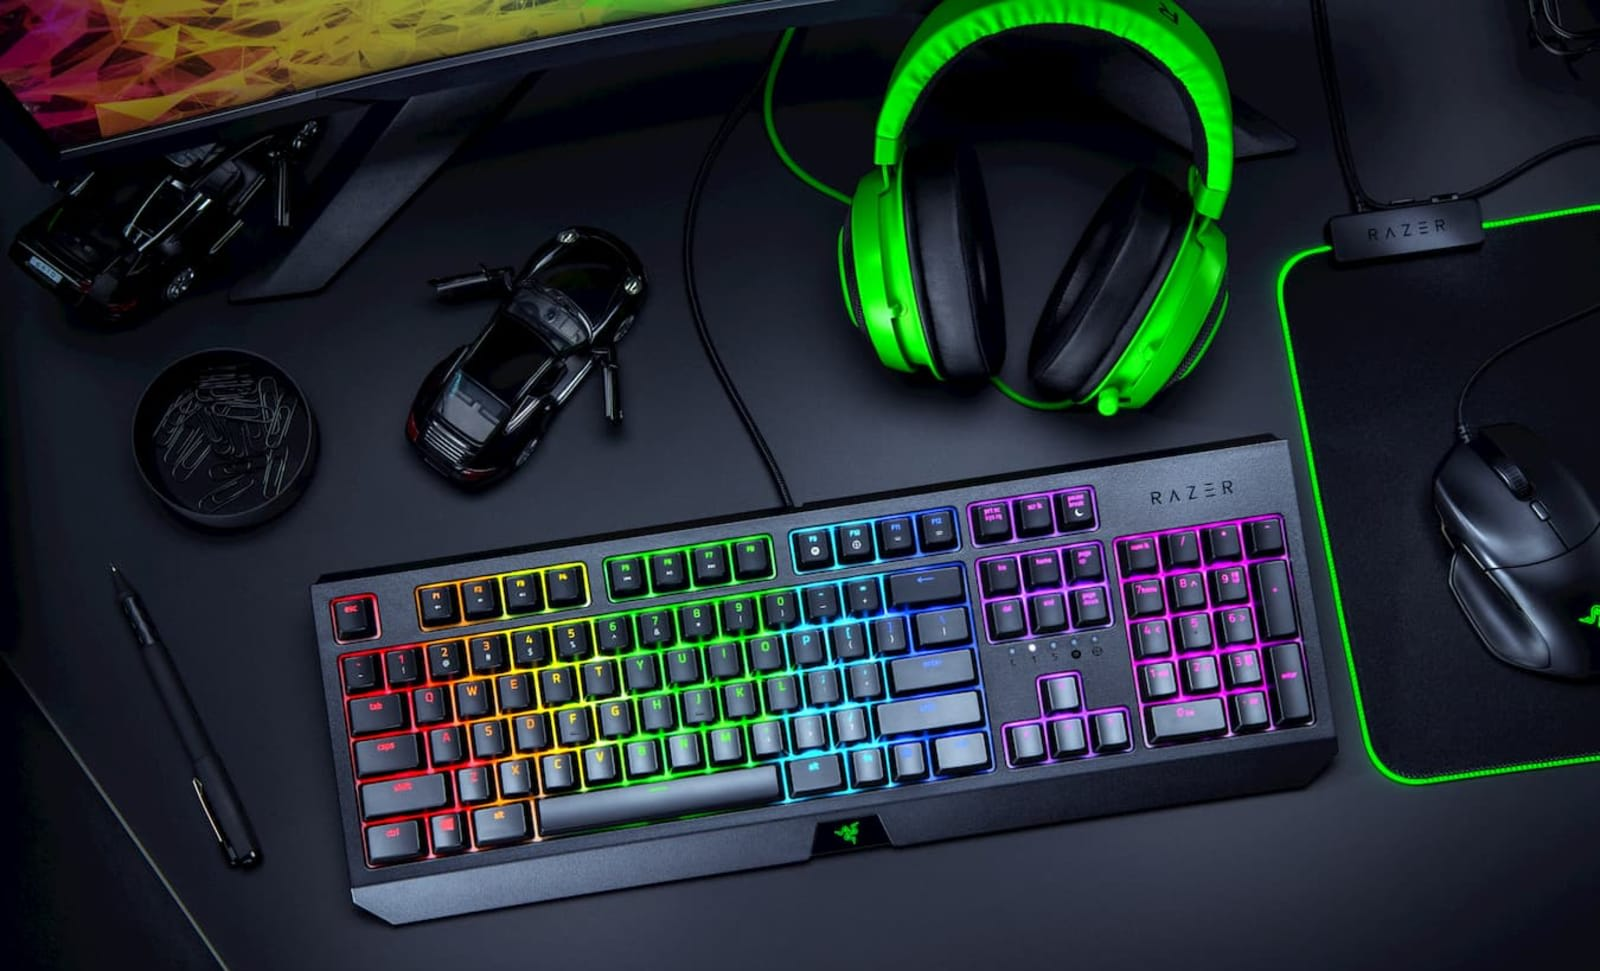 razer s new gaming accessories cut a few corners to bring prices down engadget. Black Bedroom Furniture Sets. Home Design Ideas